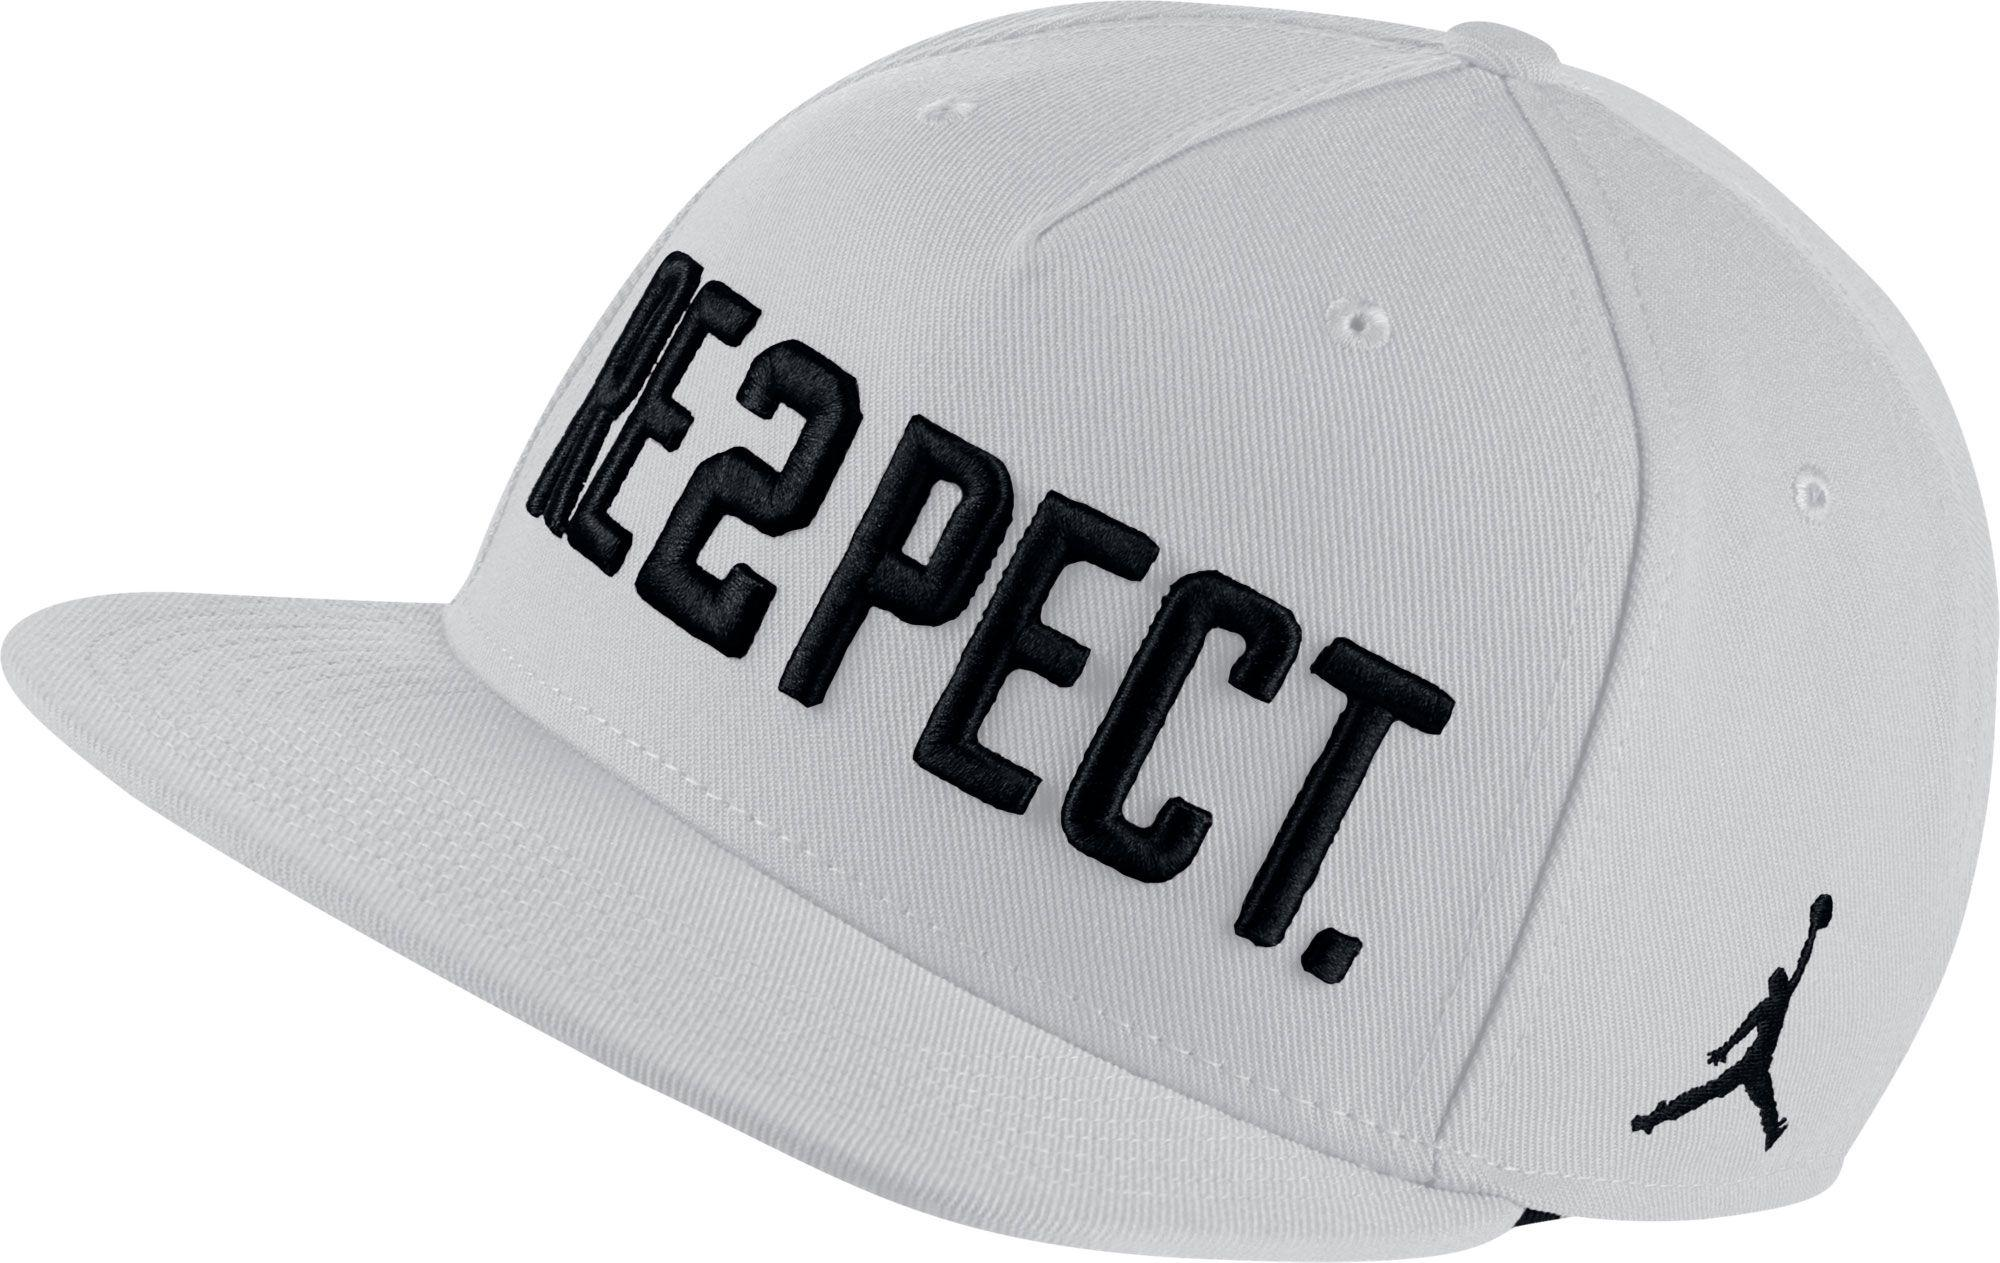 a7bfce21fded ... lyst nike pro re2pect adjustable hat in white for men